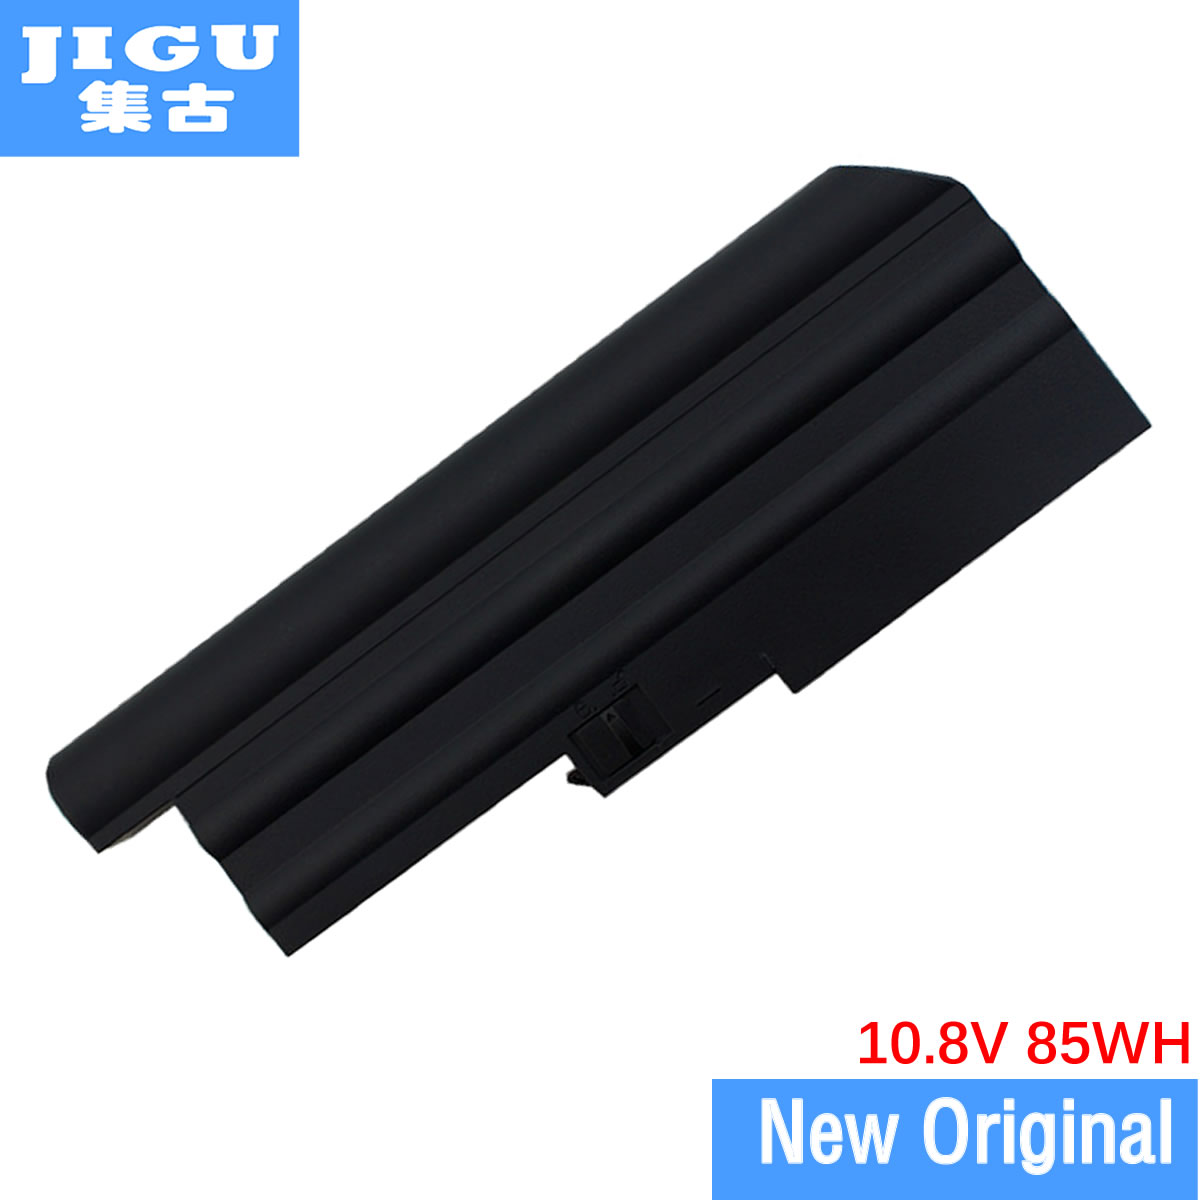 JIGU Original laptop Battery For ThinkPad R500 W500 T61 SL400 R60 R61 T500 T60p T60 SL300 SL500 Z60m Z61e m p 9CELLS